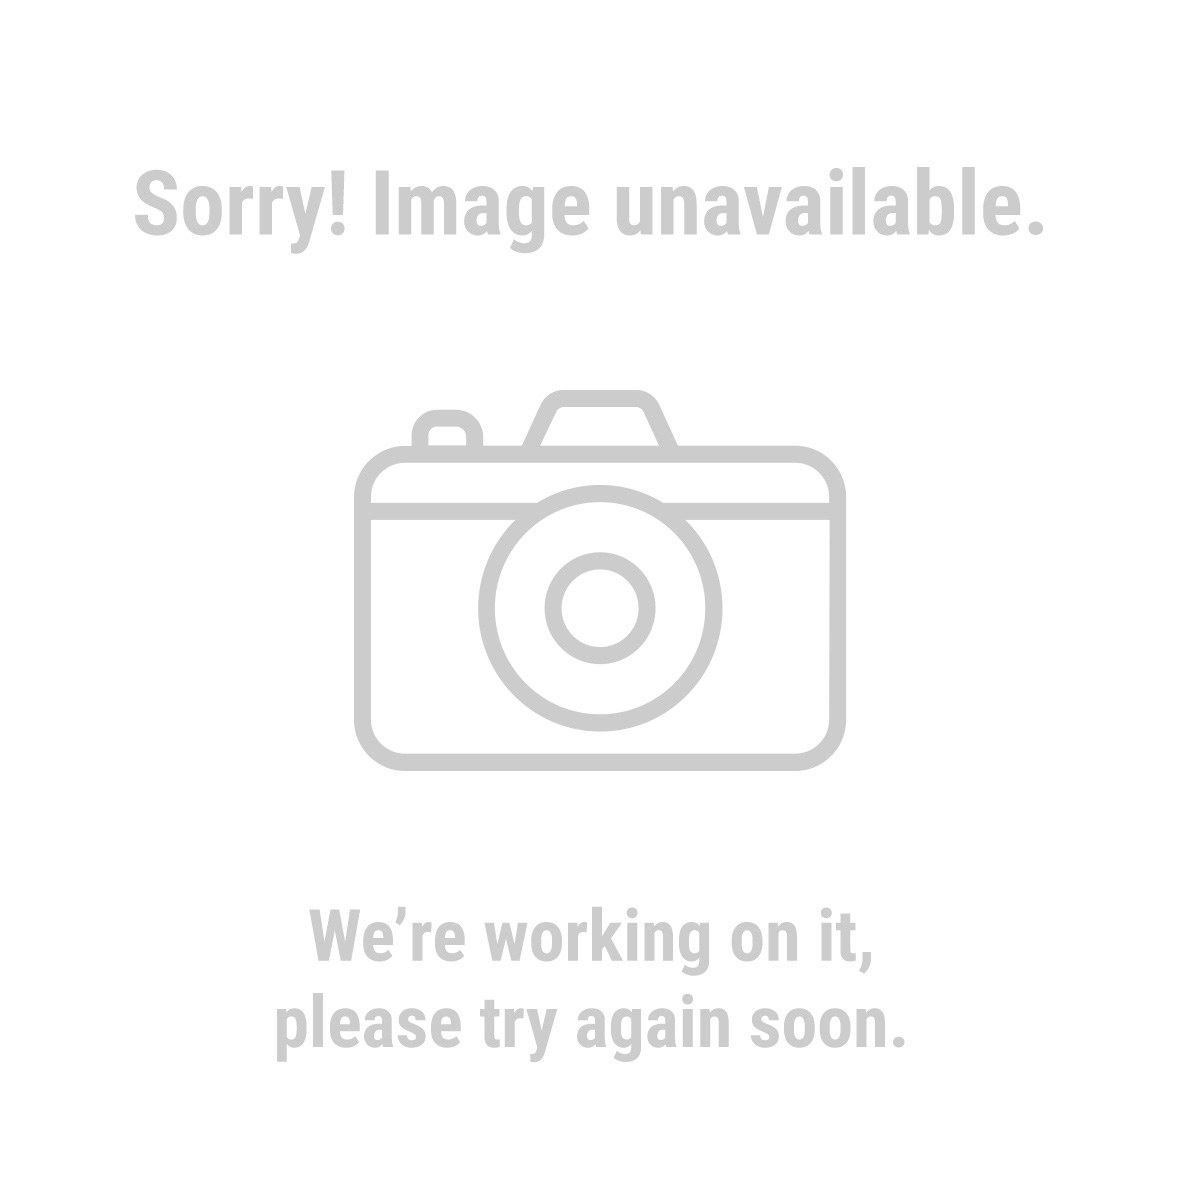 Voyager® 61644 Magnetic Wrist Band